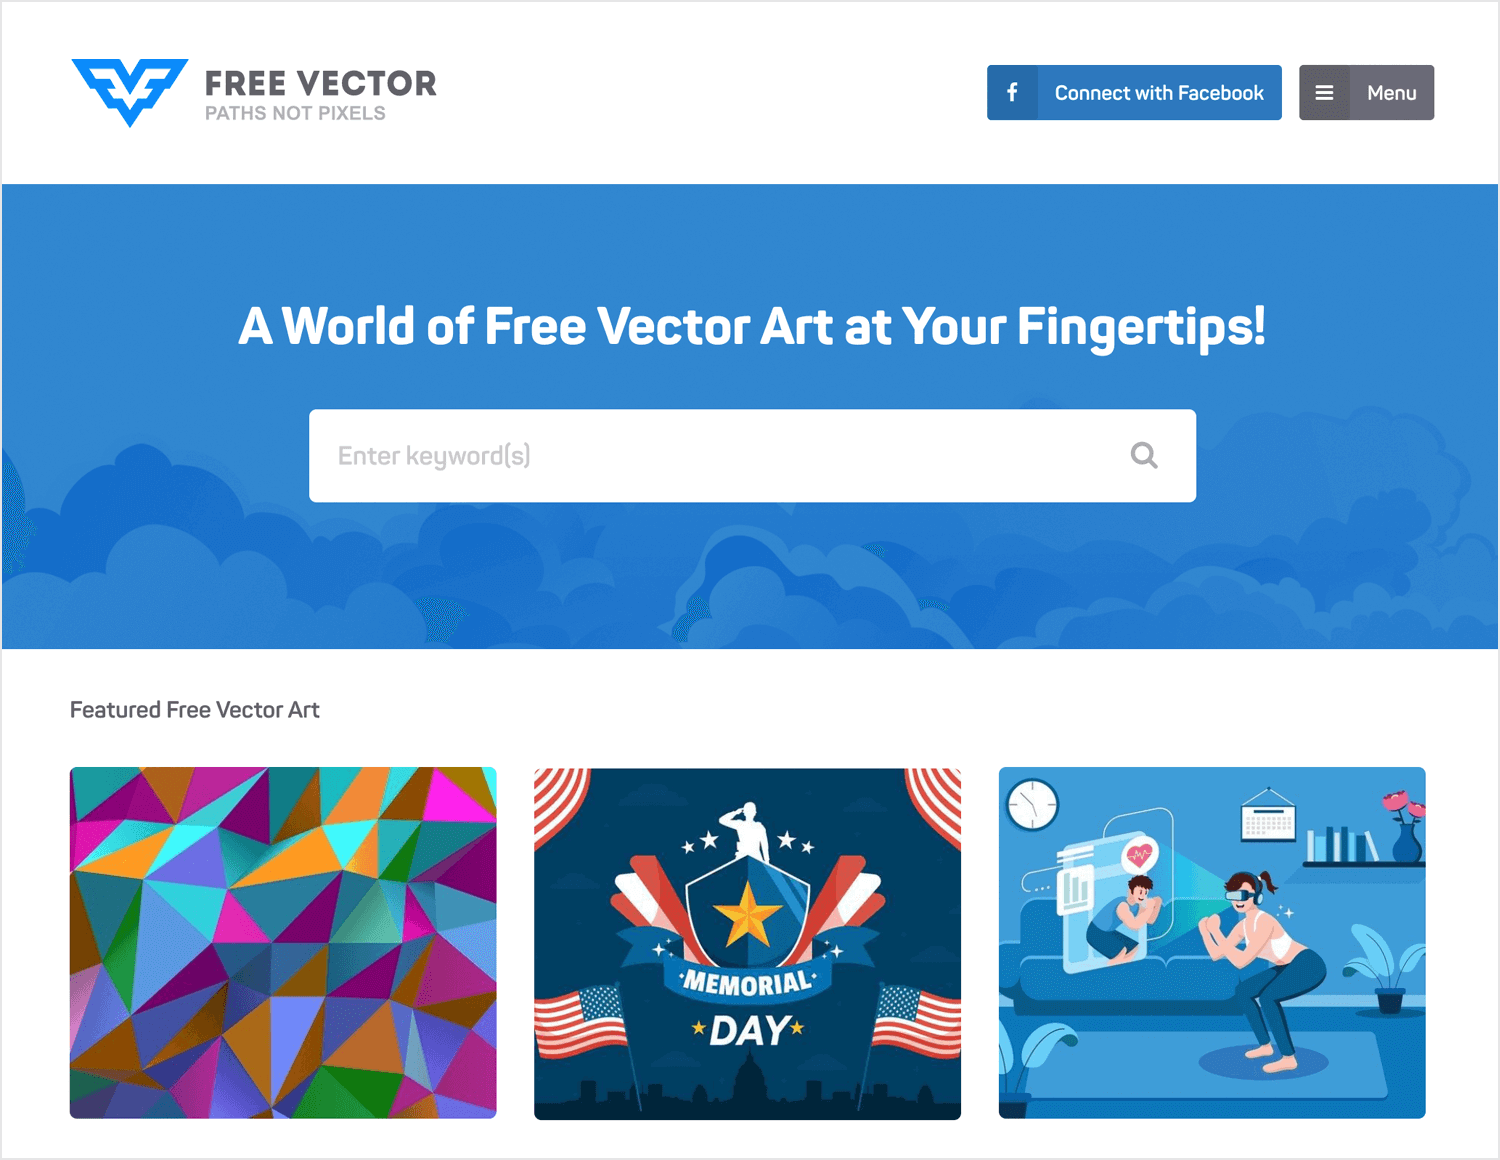 Free vector images - Freevector.com homepage